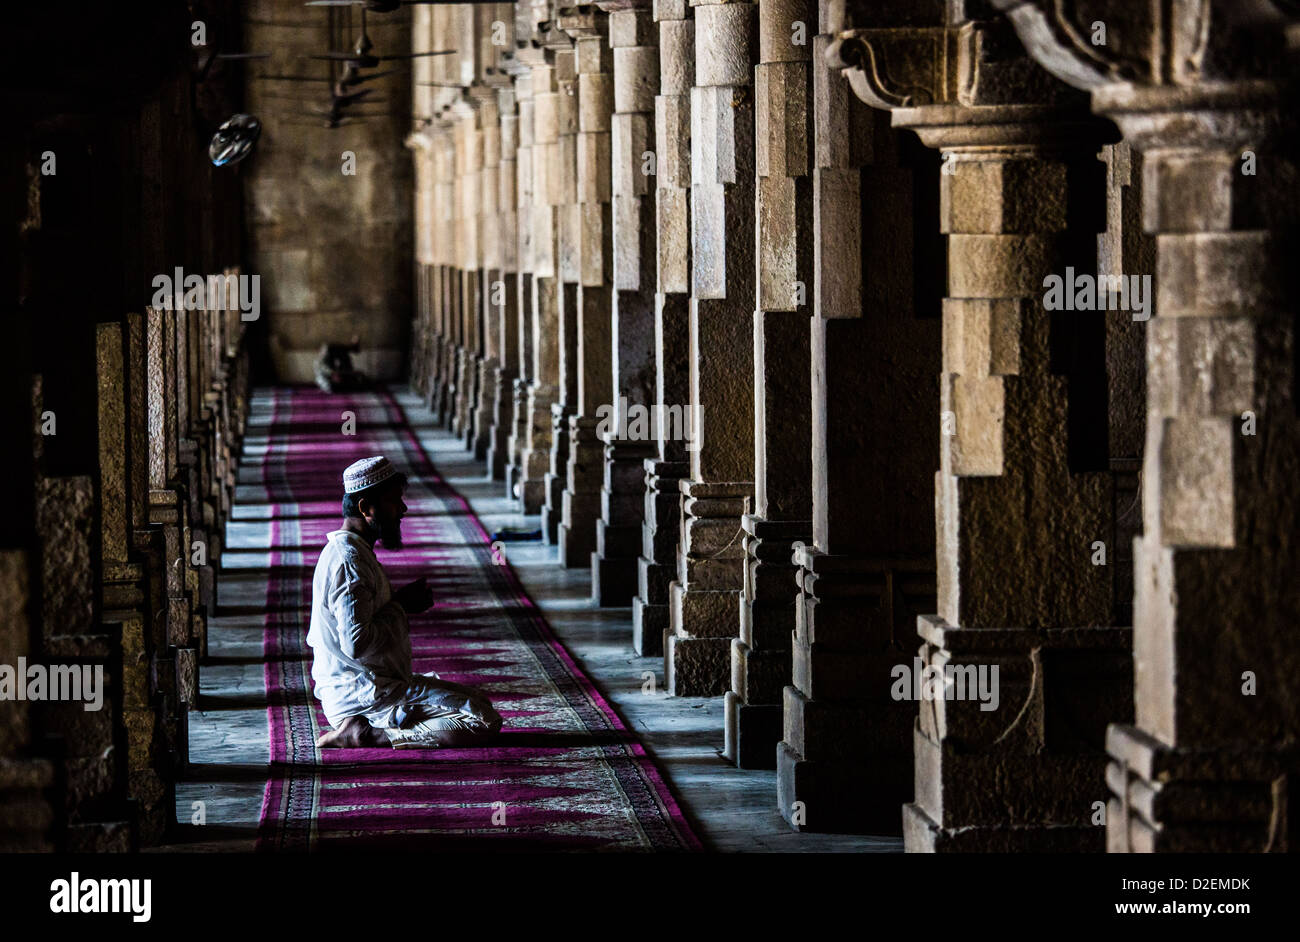 Jama Masjid or Friday Mosque, Ahmedabad, Gujarat, India - Stock Image